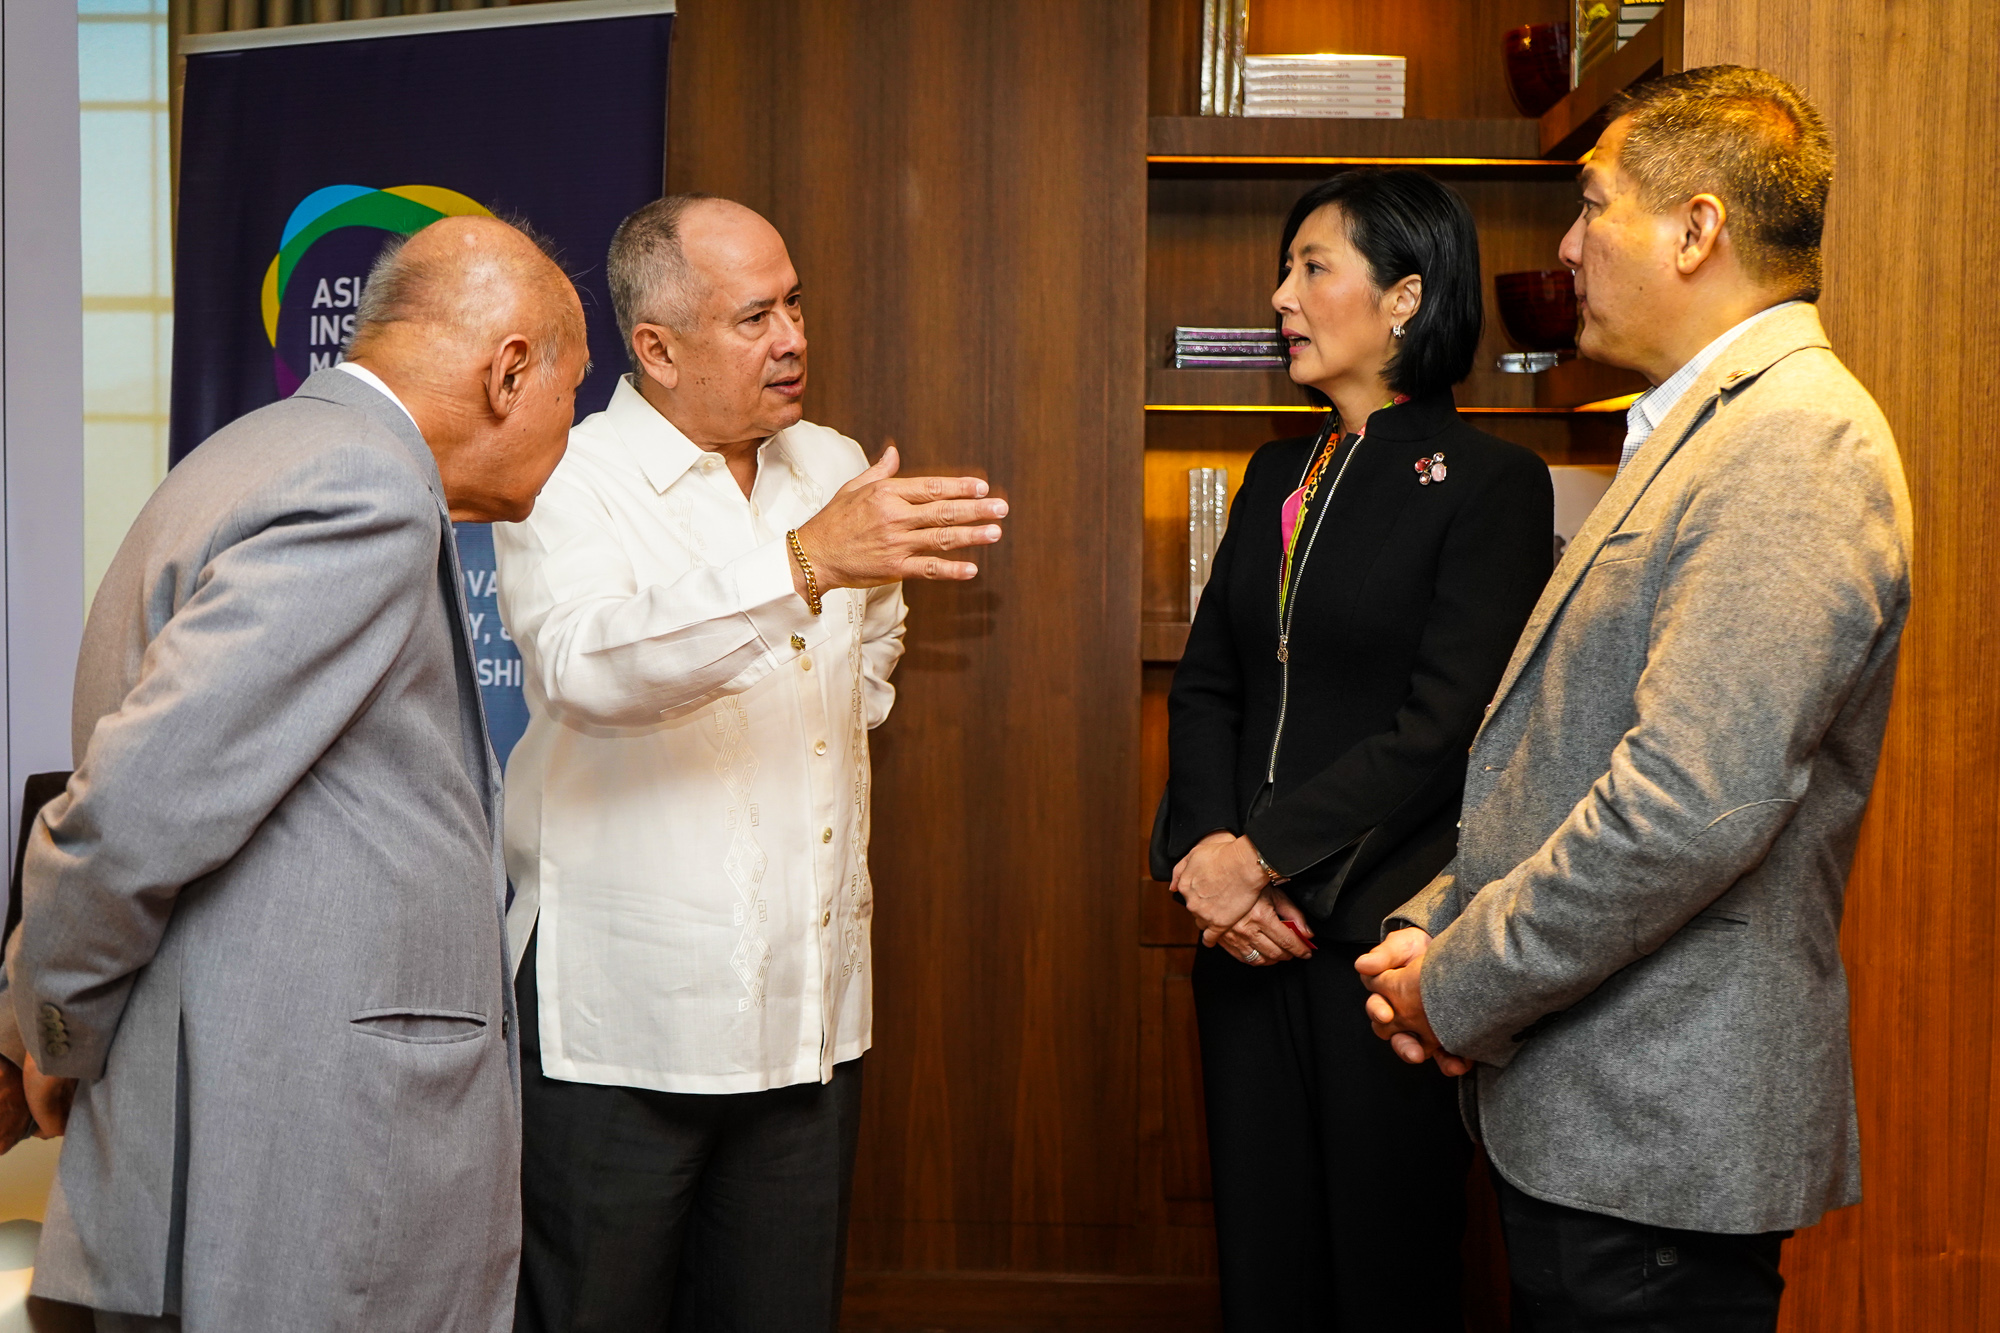 AIM Chairman Peter Garrucho with EIA, Dr. Jikyeong Kang, and AEV Chief External Relations Officer DJ Sta. Ana